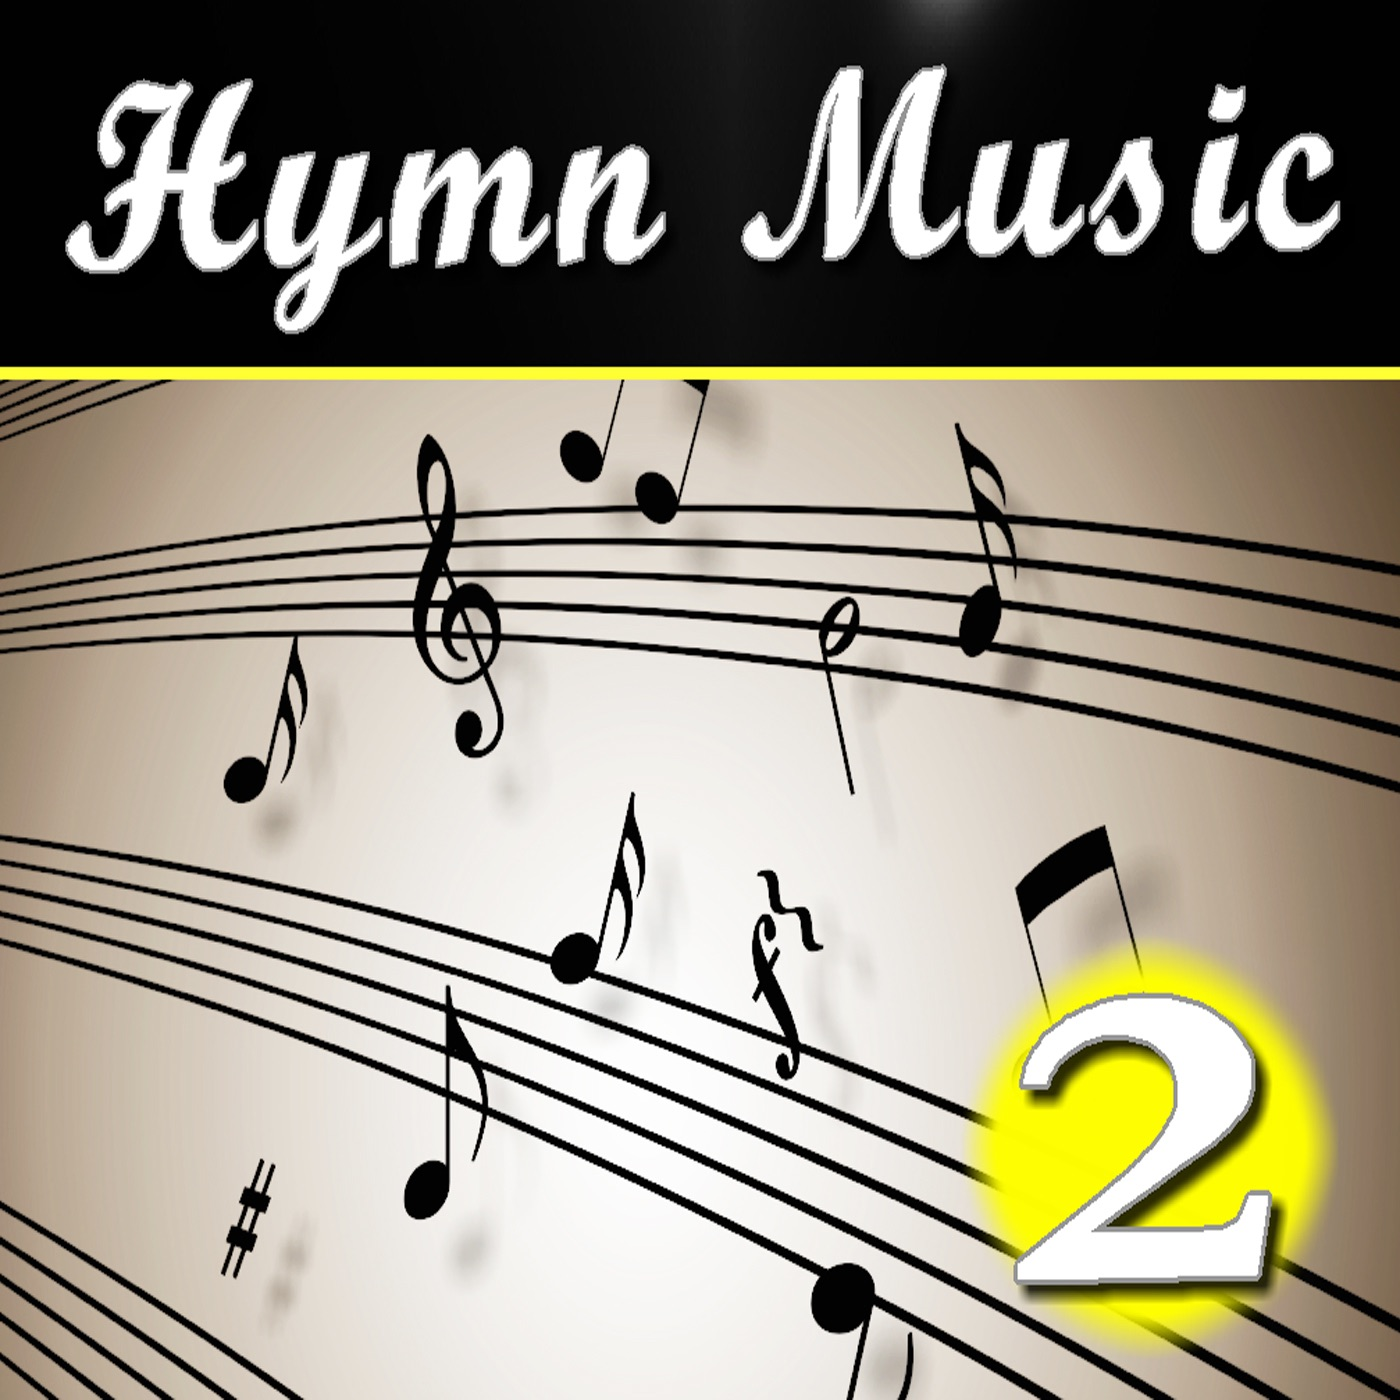 MP3 Songs Online:♫ When the Roll is Called Up Yonder - Praise Hymn Family album Hymn Music (Christian Music, Vol. 2). Christian & Gospel,Music listen to music online free without downloading.